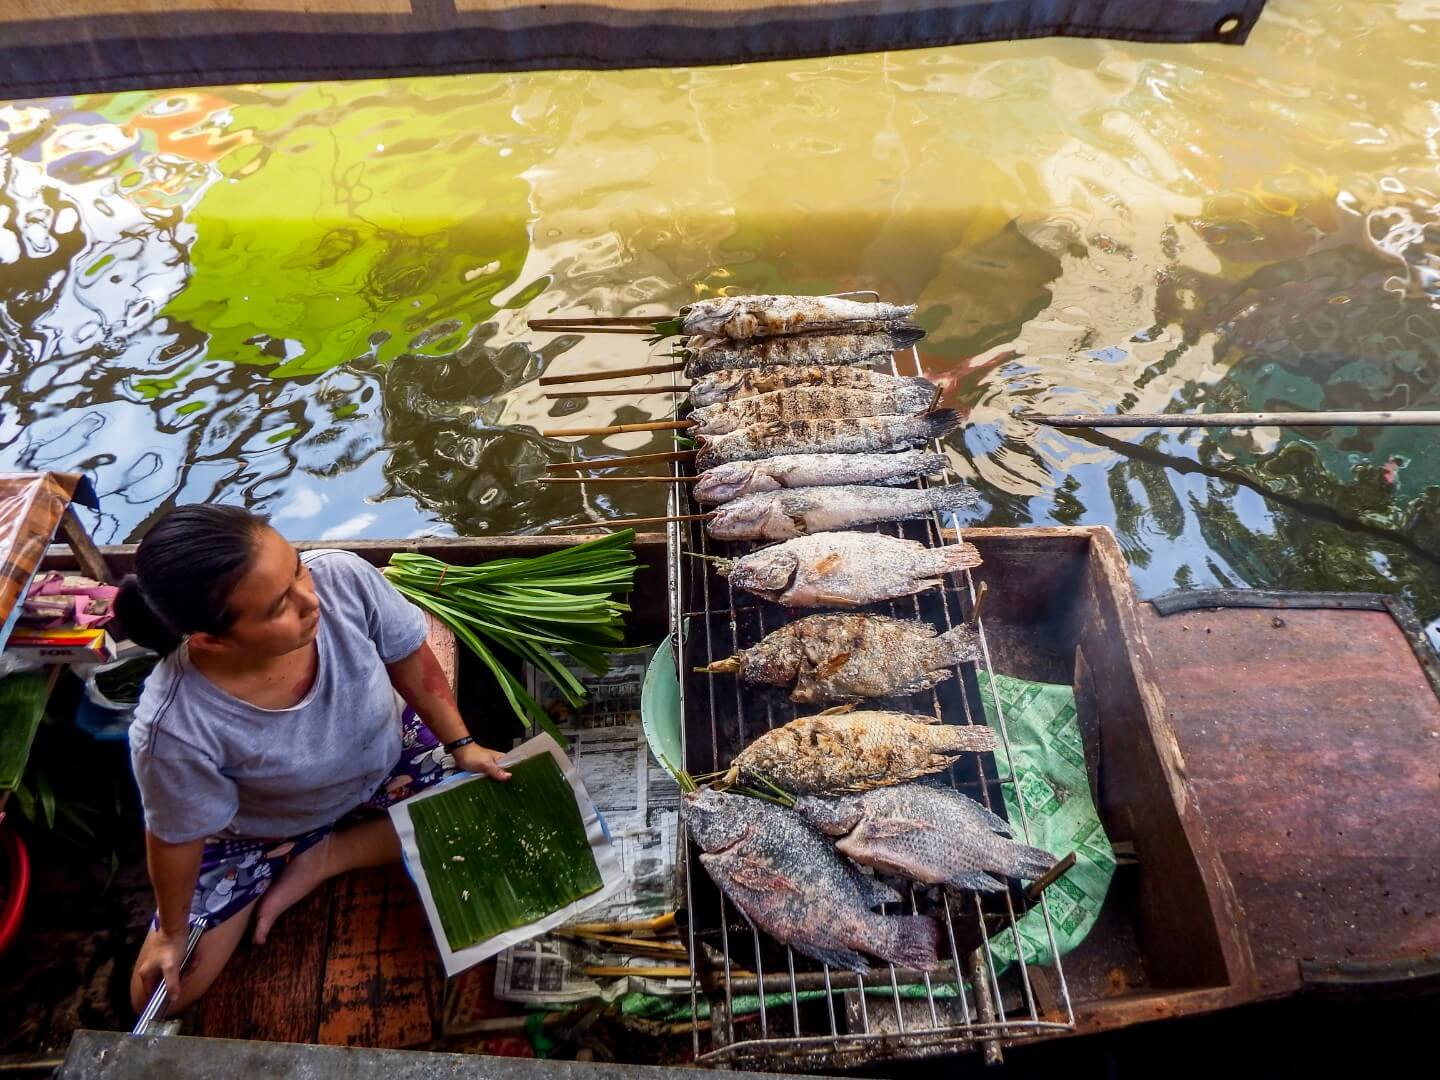 Taling Chan Floating Market, Bangkok to Chiang Mai Itinerary | Moon & Honey Travel